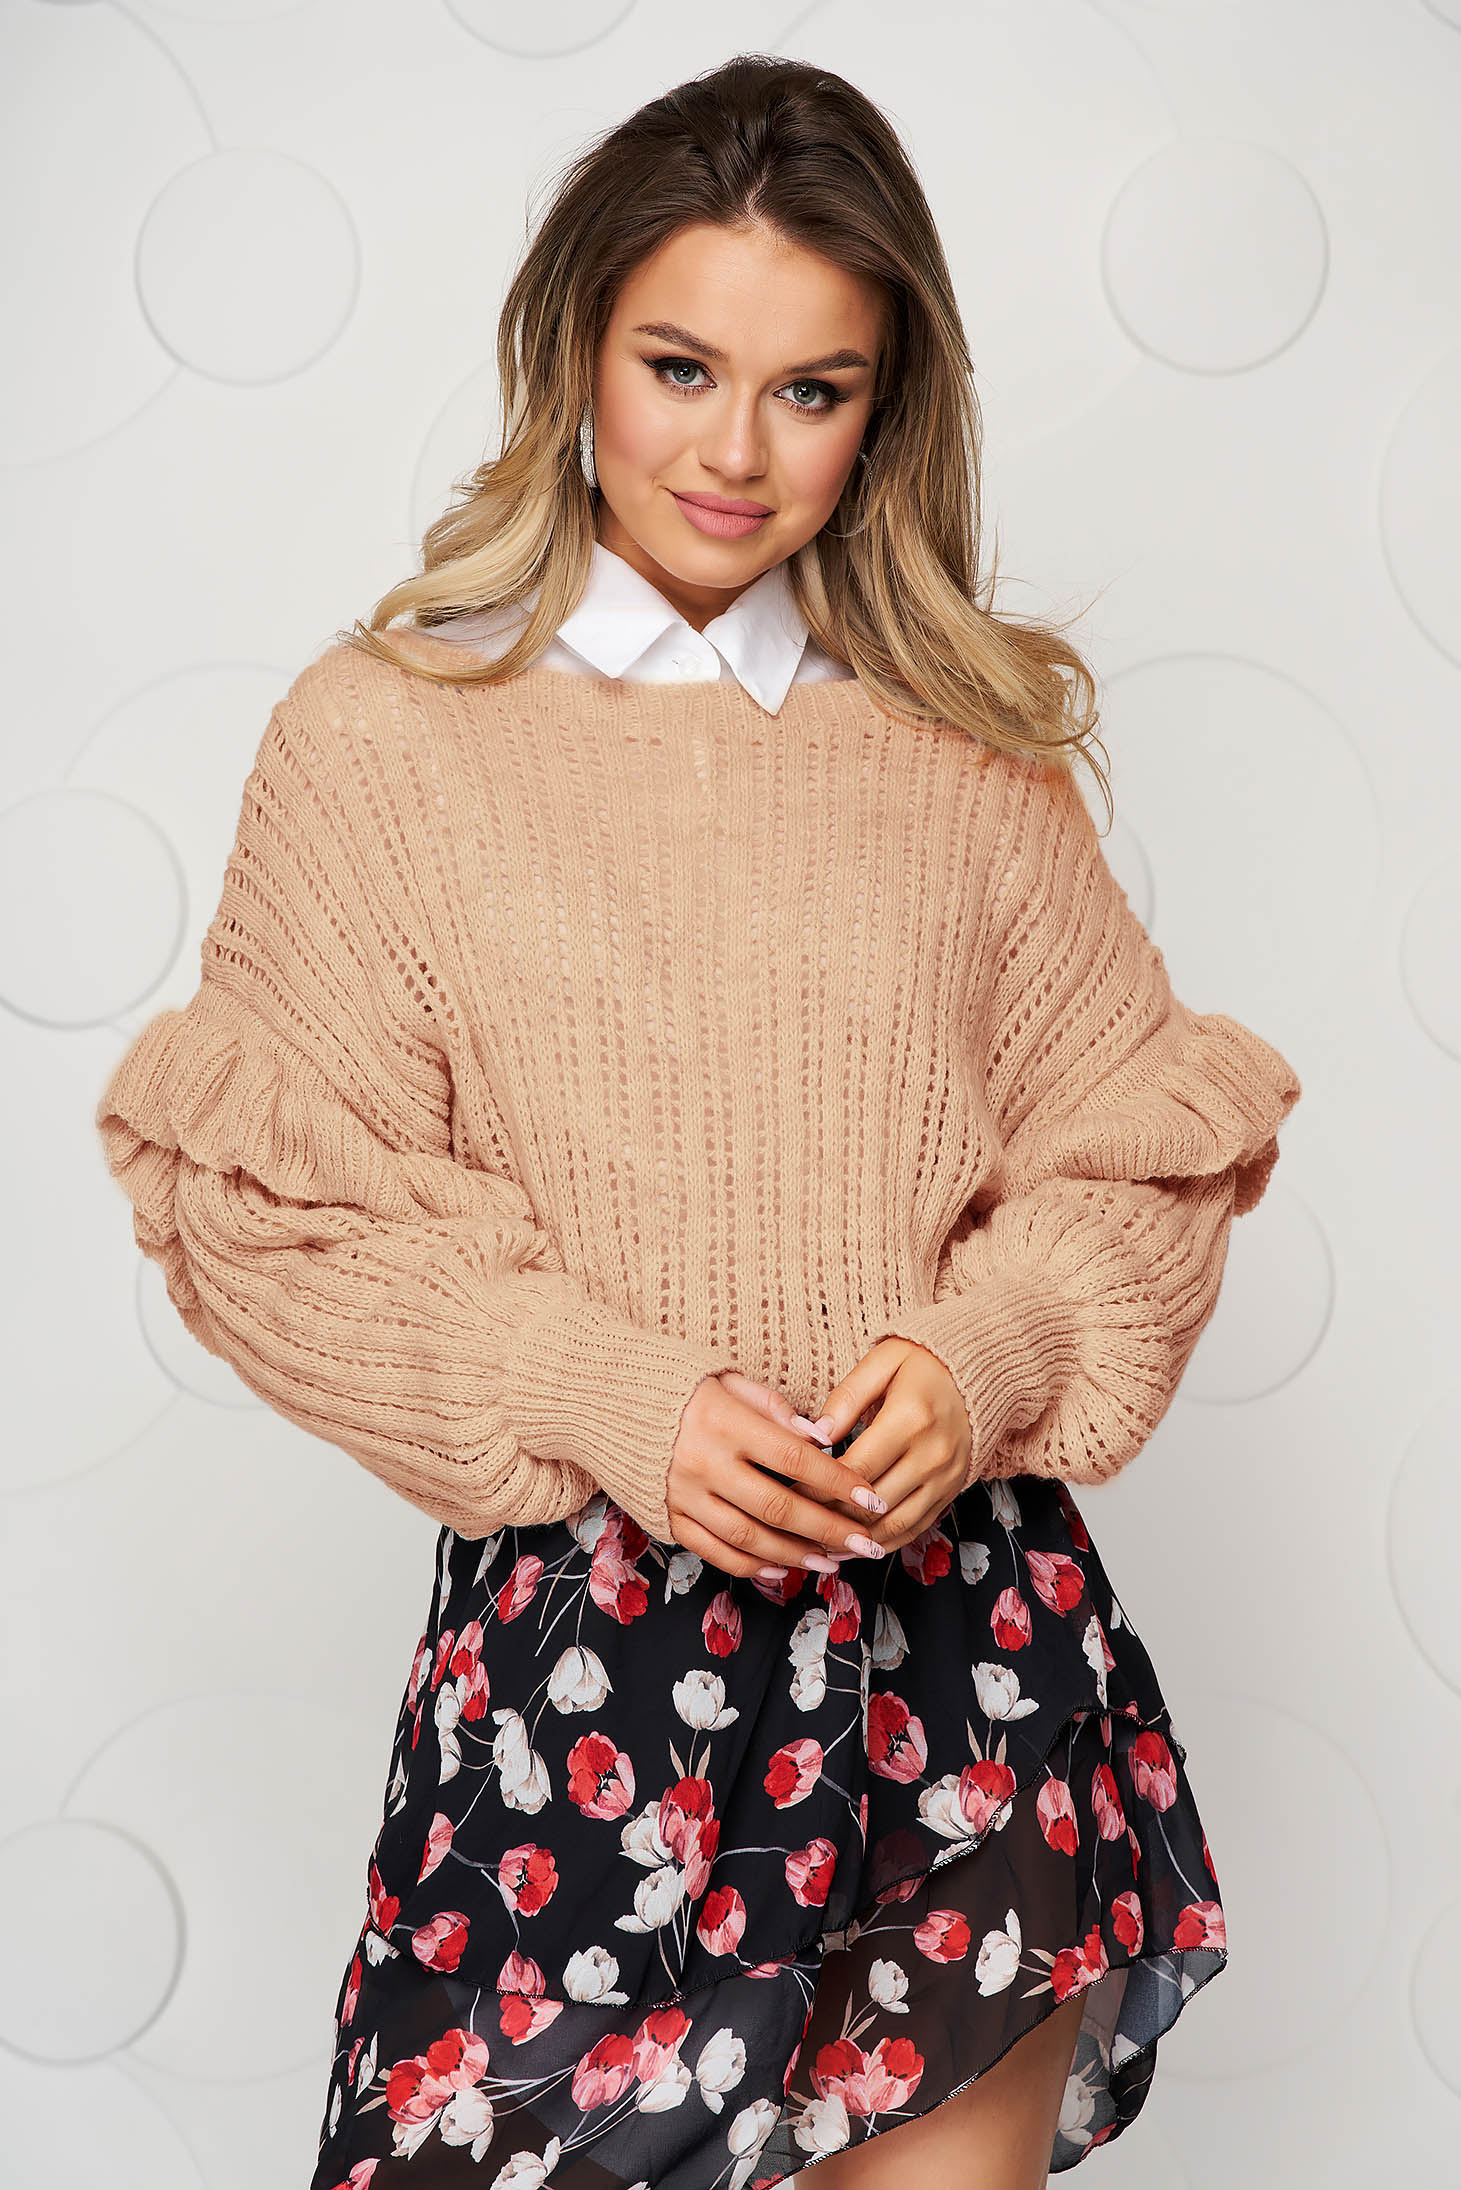 Knitted cappuccino sweater transparent fabric with ruffle details loose fit